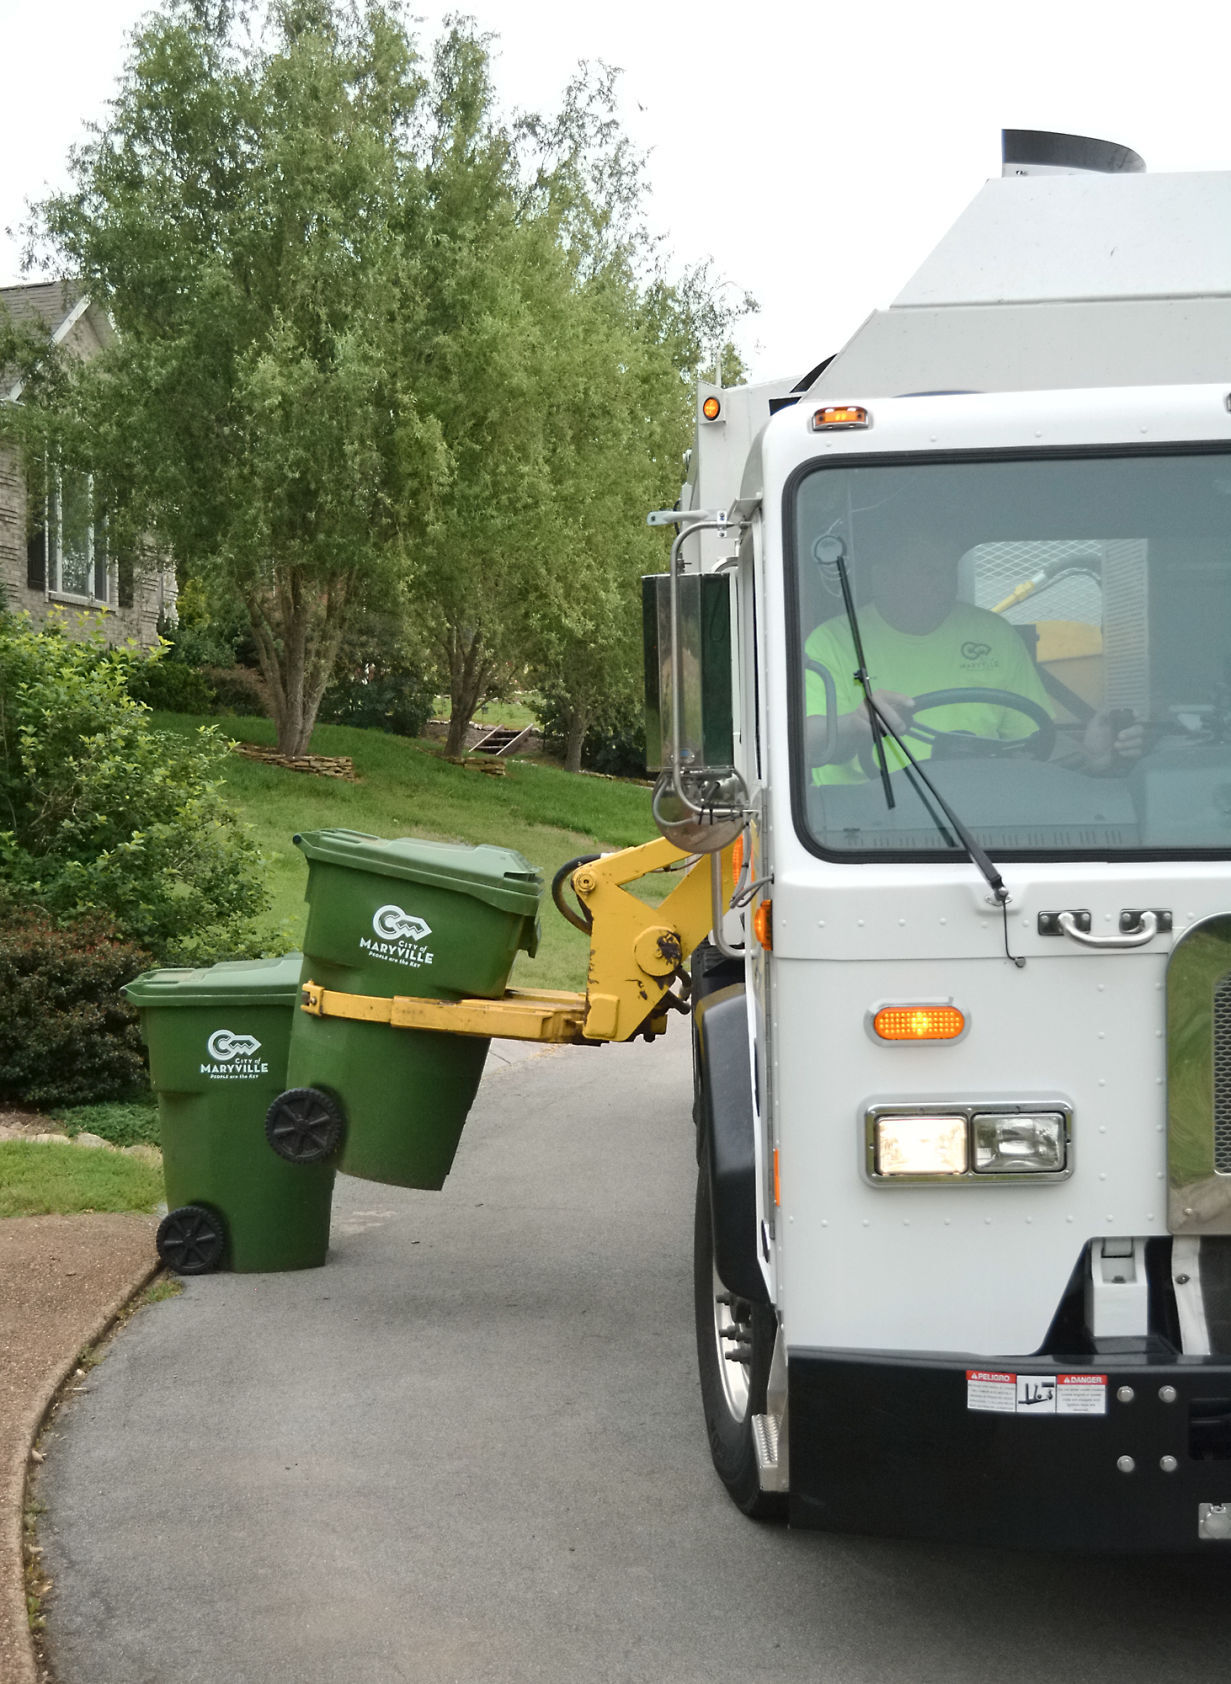 Maryville Waste Collection Truck